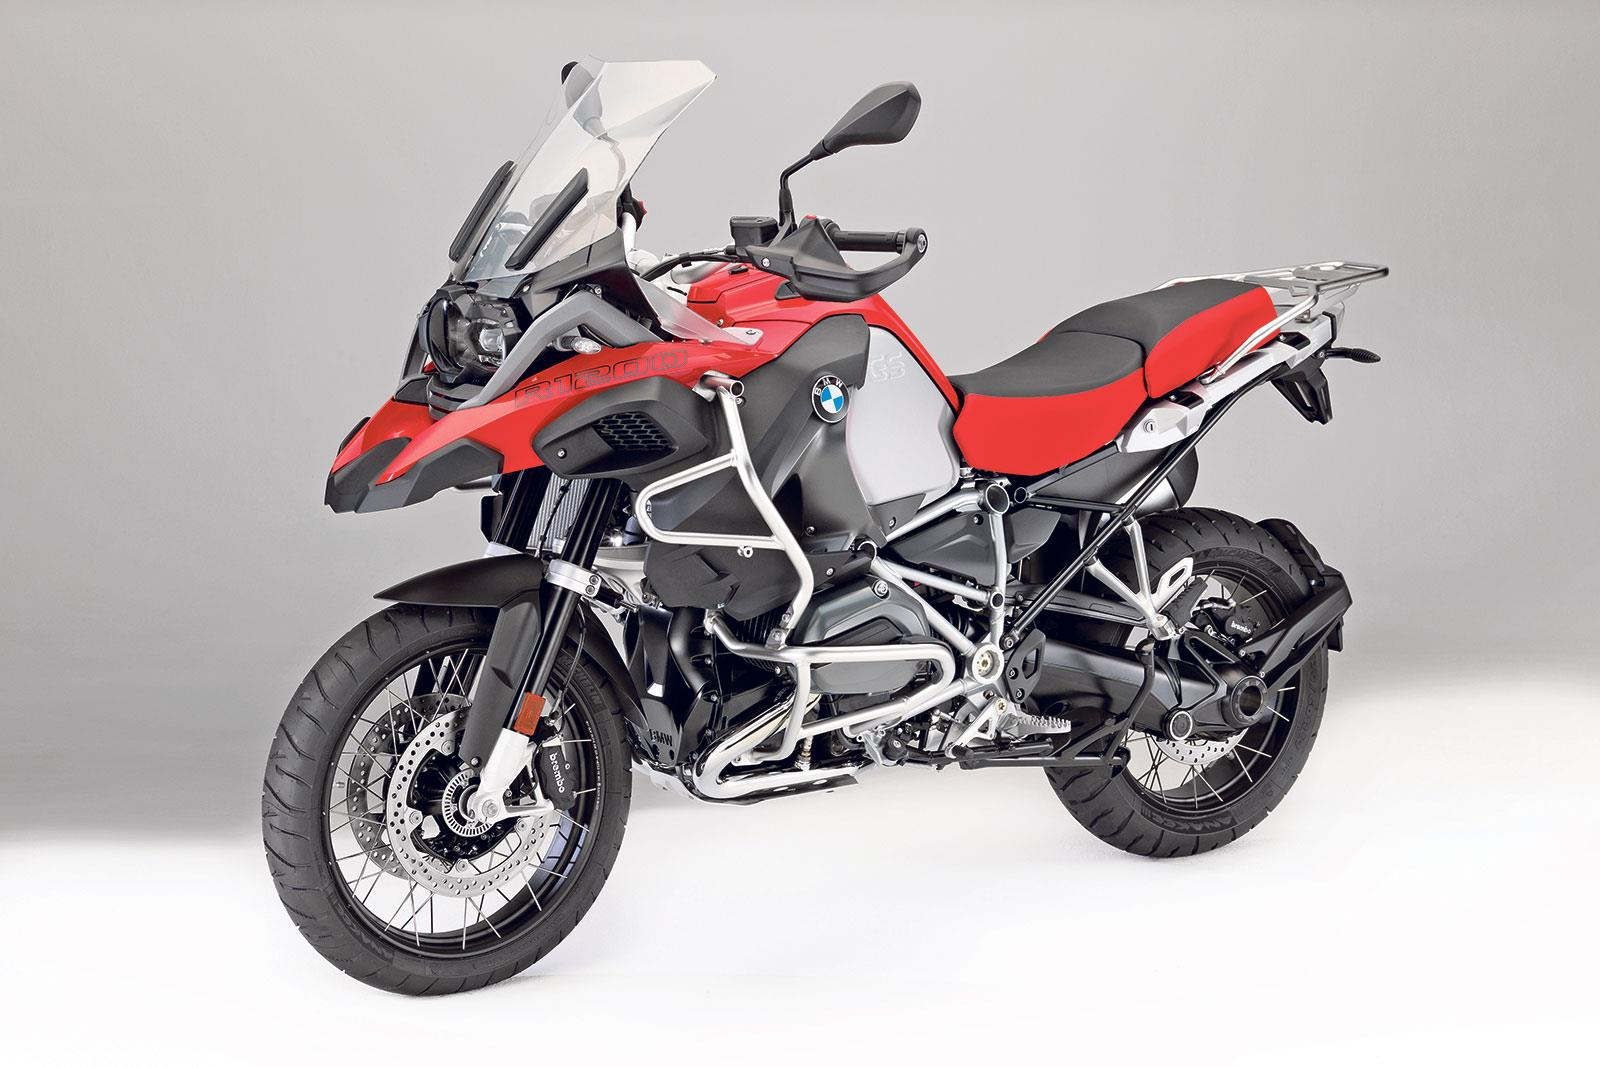 Bmw r1200gs Adventure 2017 User Manual problems